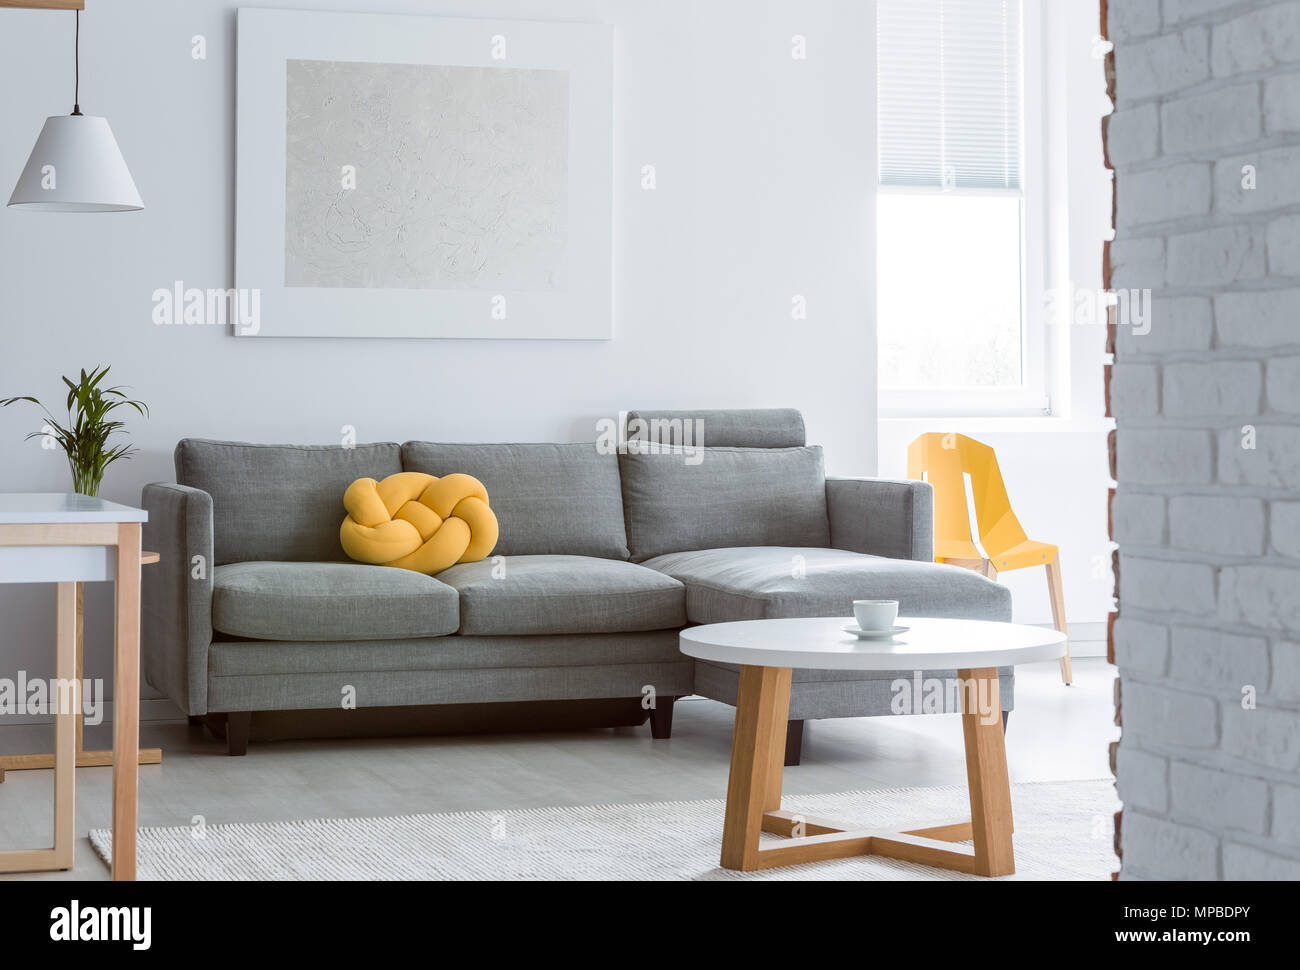 Yellow Decorative Pillow On Grey Sofa In Living Room With